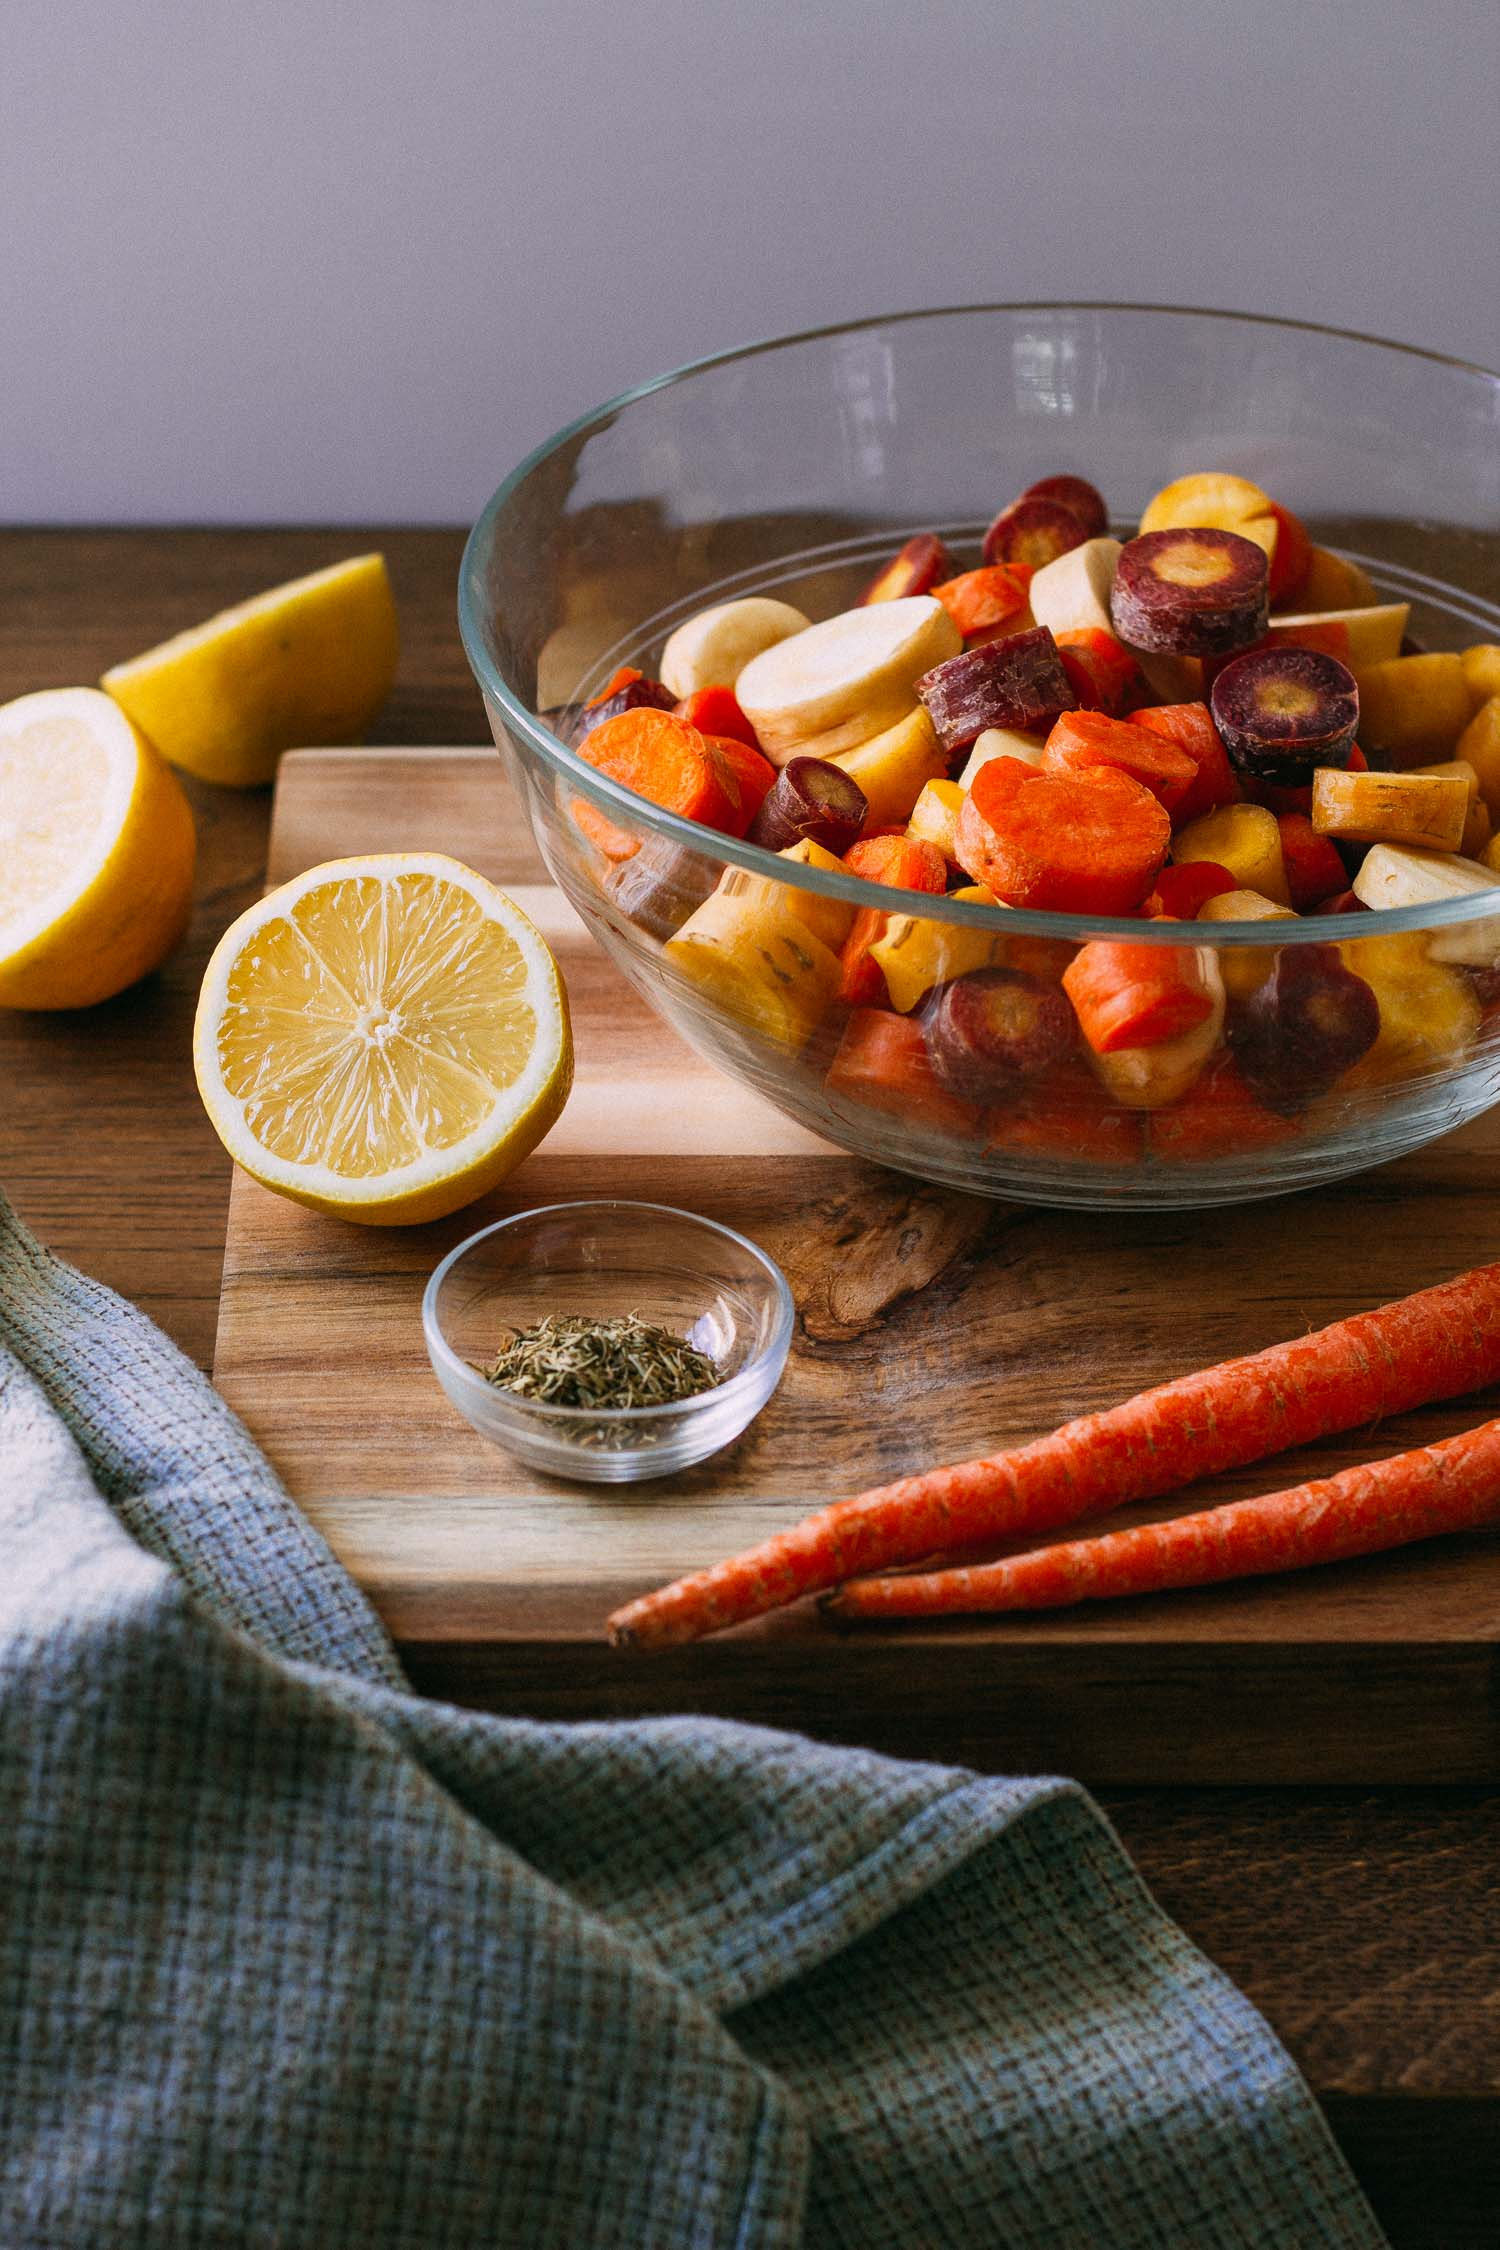 Roasted Rainbow Carrot Rounds #carrots #roasted #vegetables